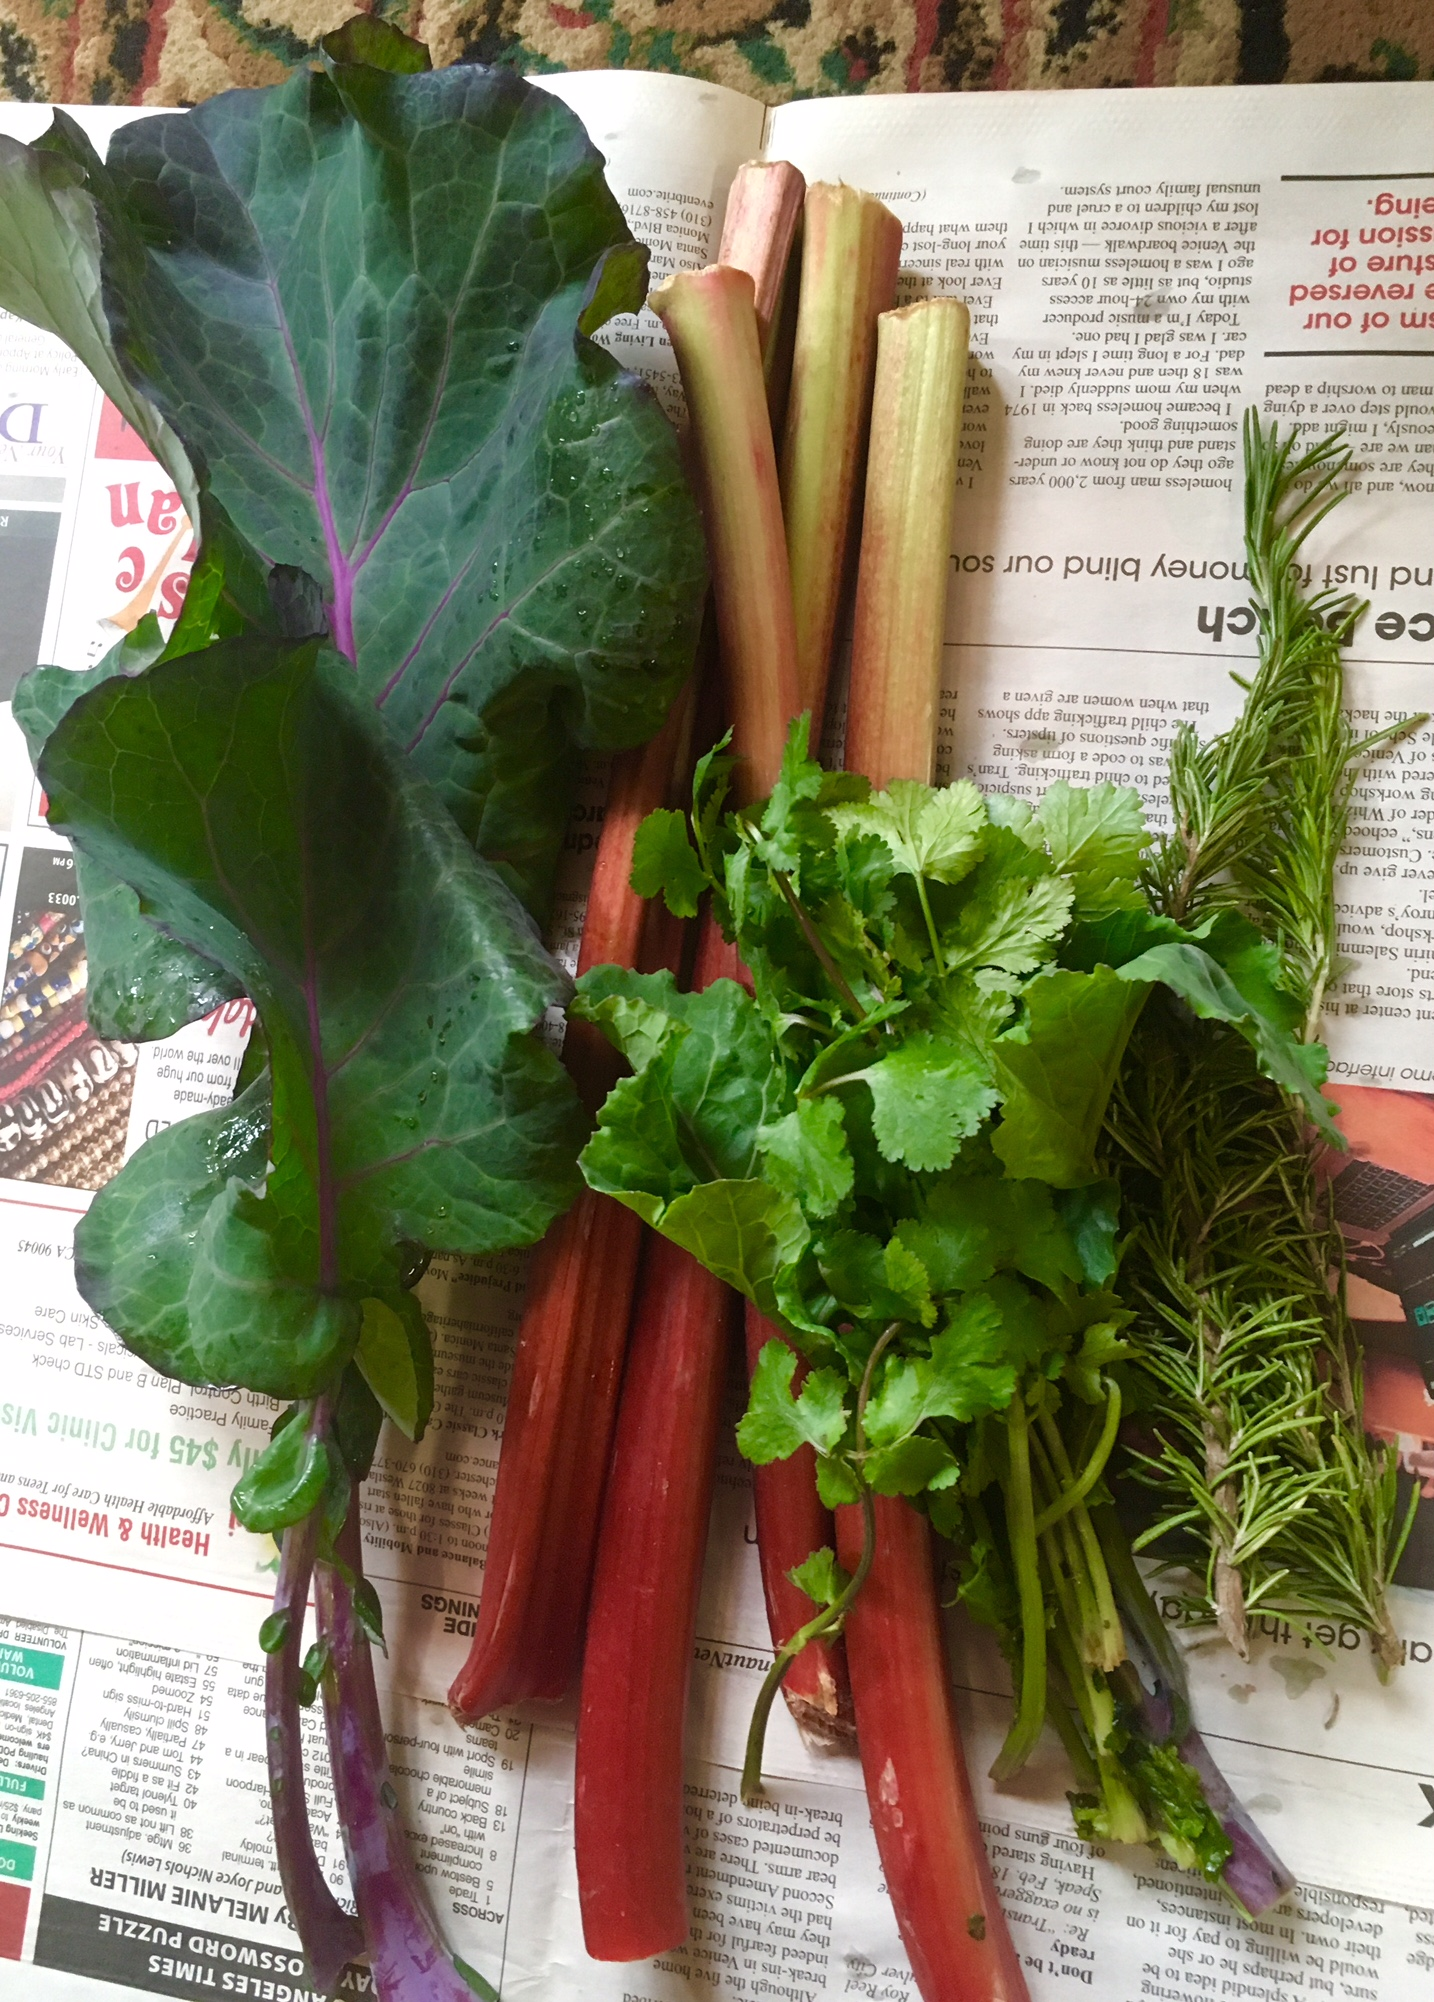 4 stems of rhubarb arrived in our monthly produce exchange. Just enough for rhubarb compote.